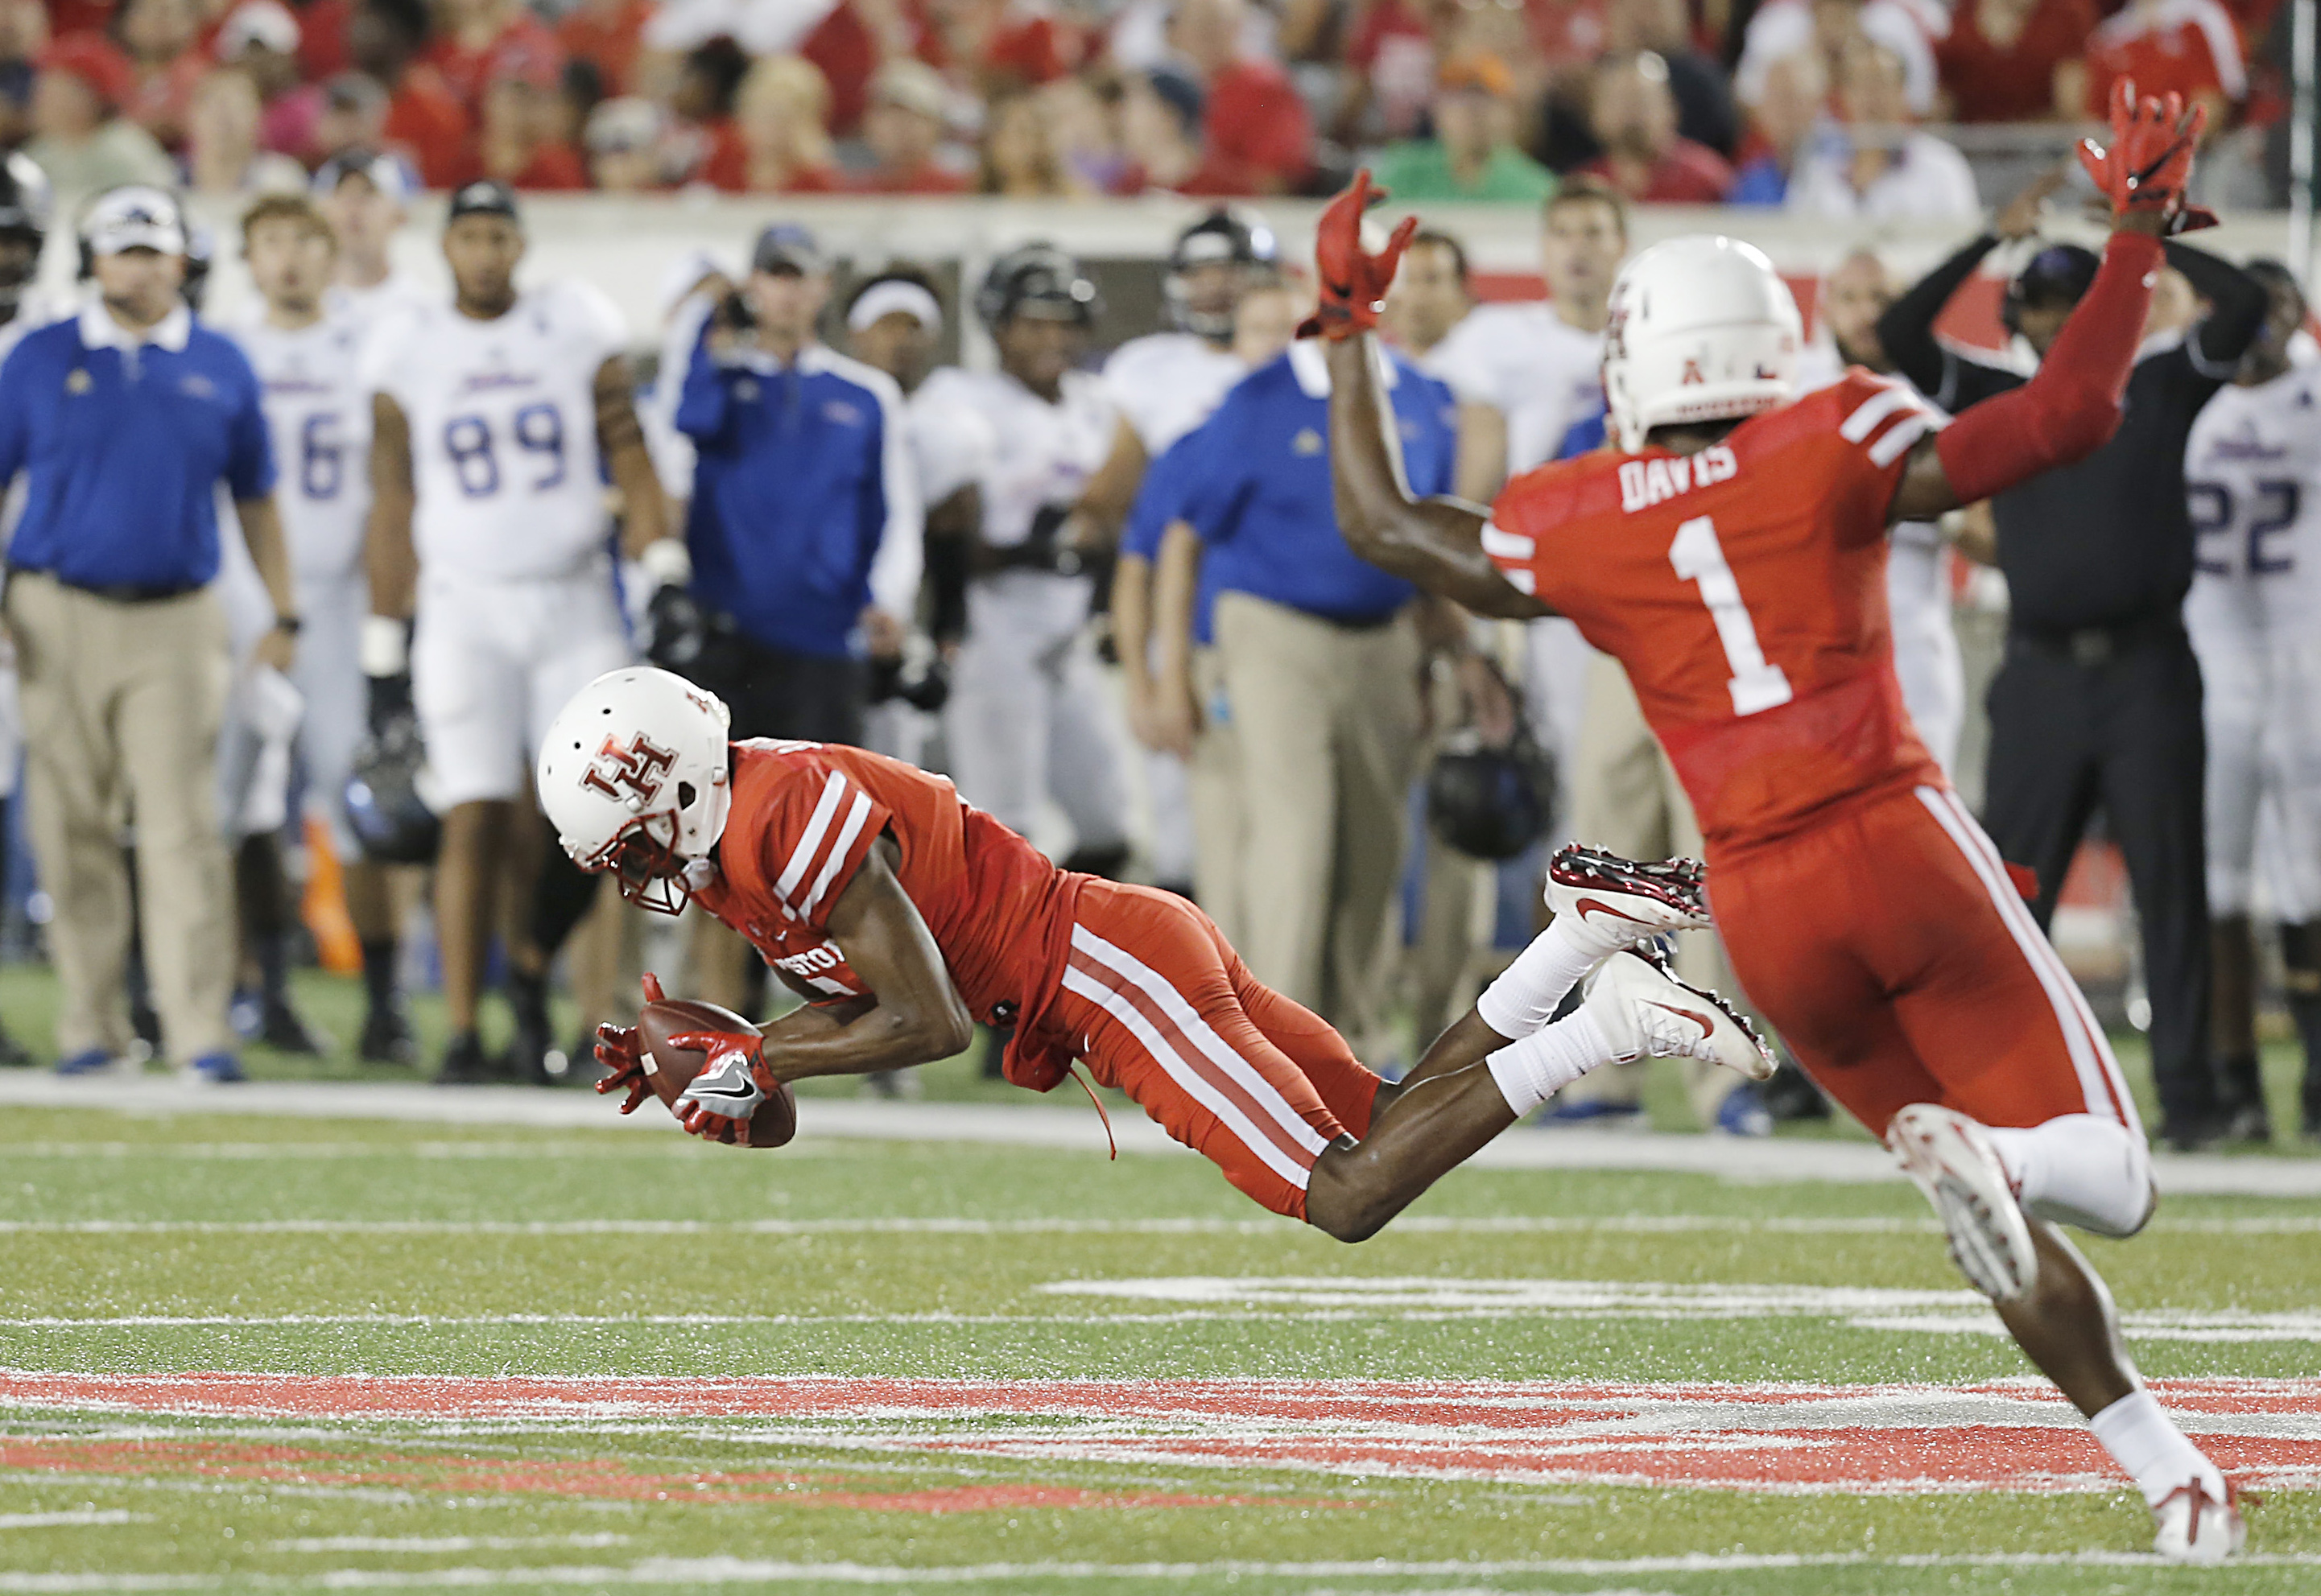 Oct 15, 2016; Houston, TX, USA; Houston Cougars cornerback Howard Wilson (6) intercepts the ball against the Tulsa Golden Hurricane in the second quarter at TDECU Stadium. Mandatory Credit: Thomas B. Shea-USA TODAY Sports